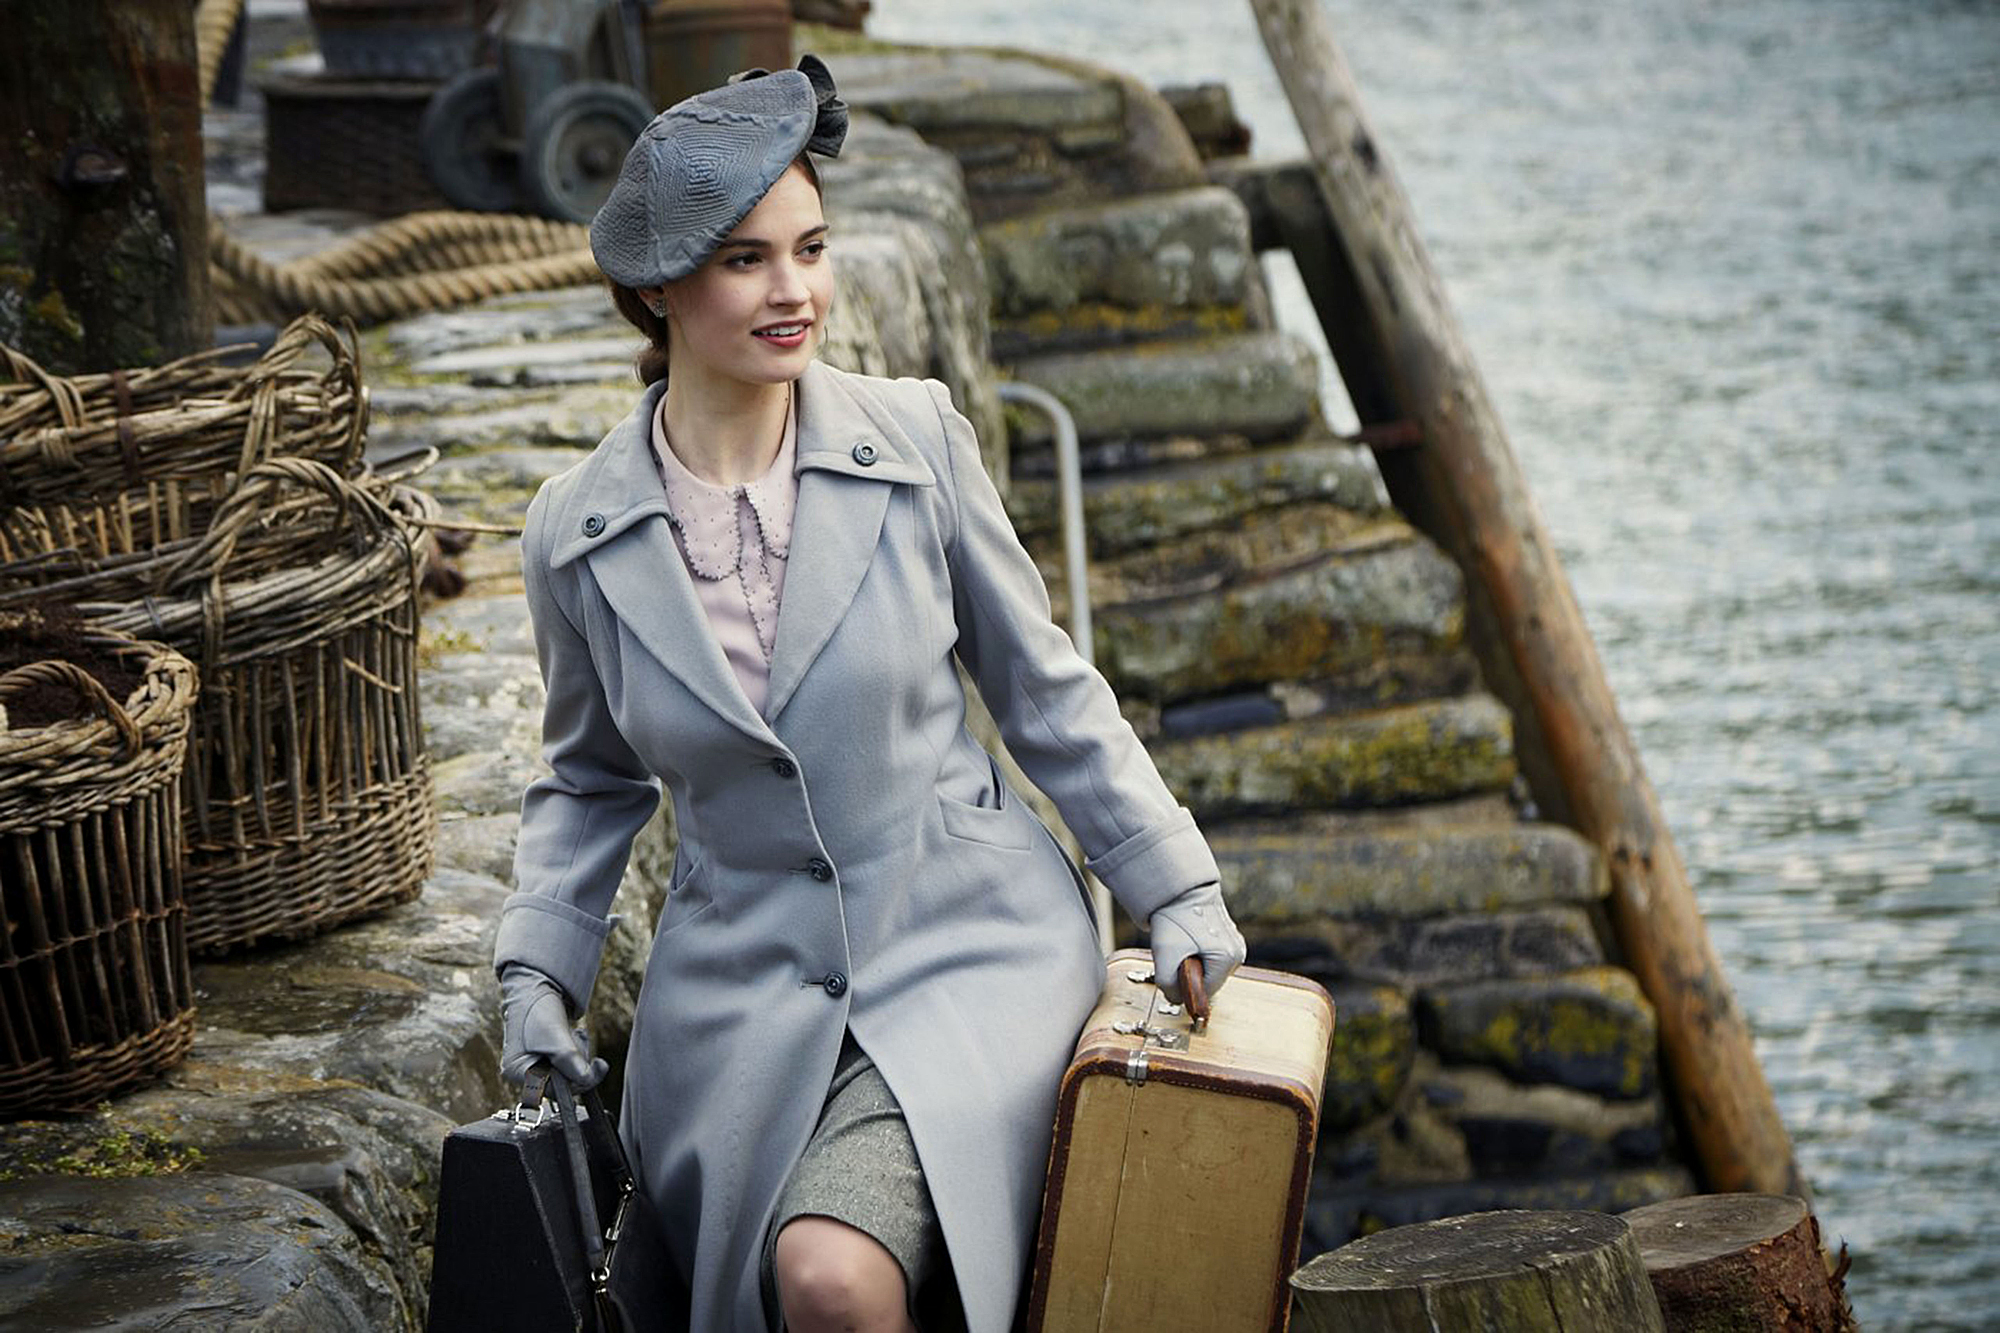 The Guernsey Literary and Potato Peel Pie Society - 2018